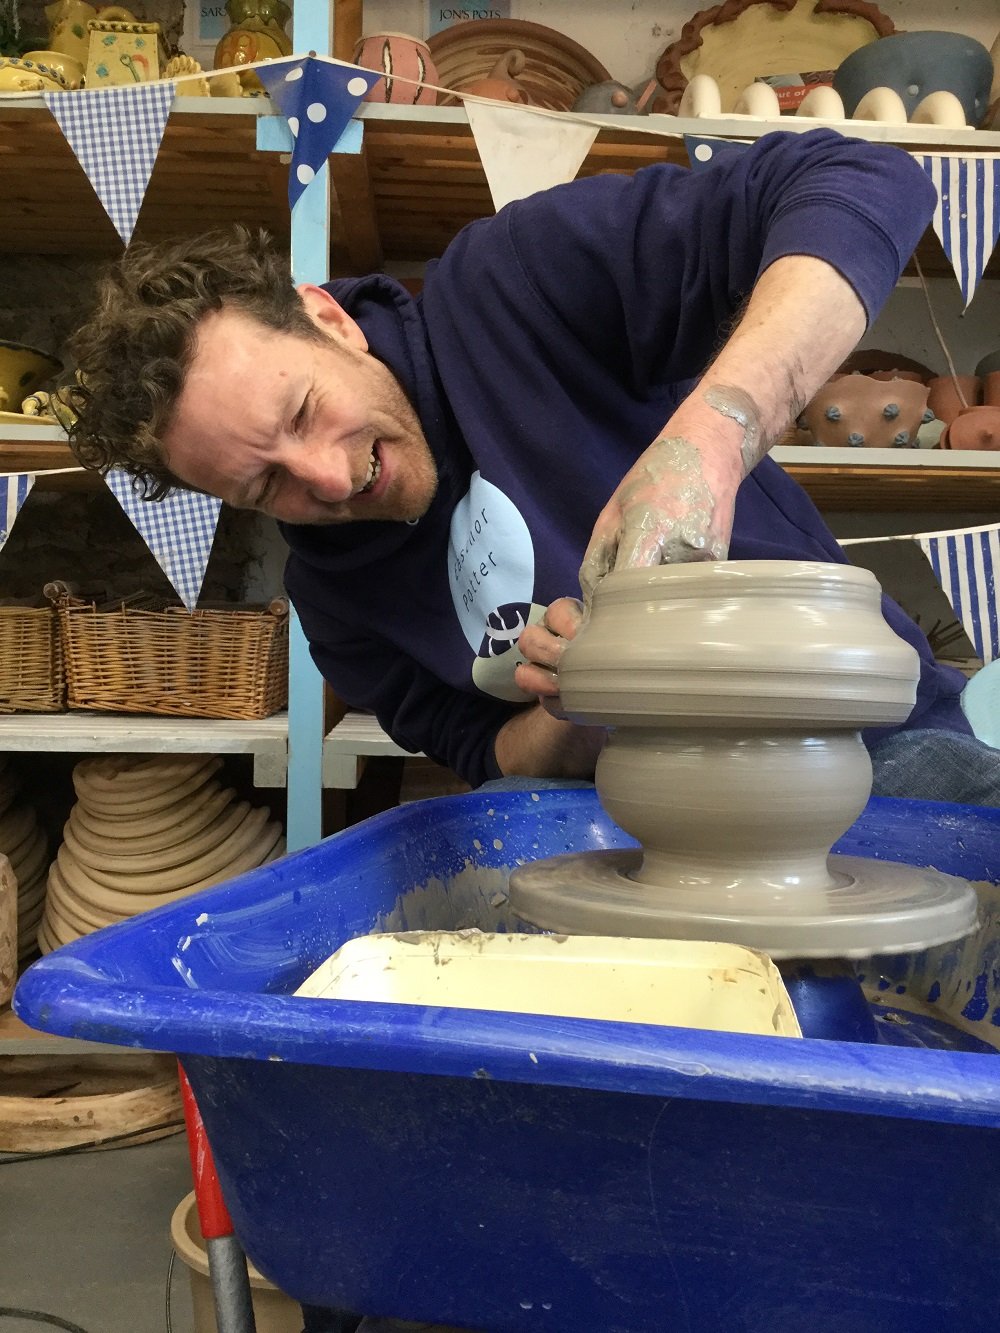 jon williams from eastnor pottery making a pot on the potters wheel